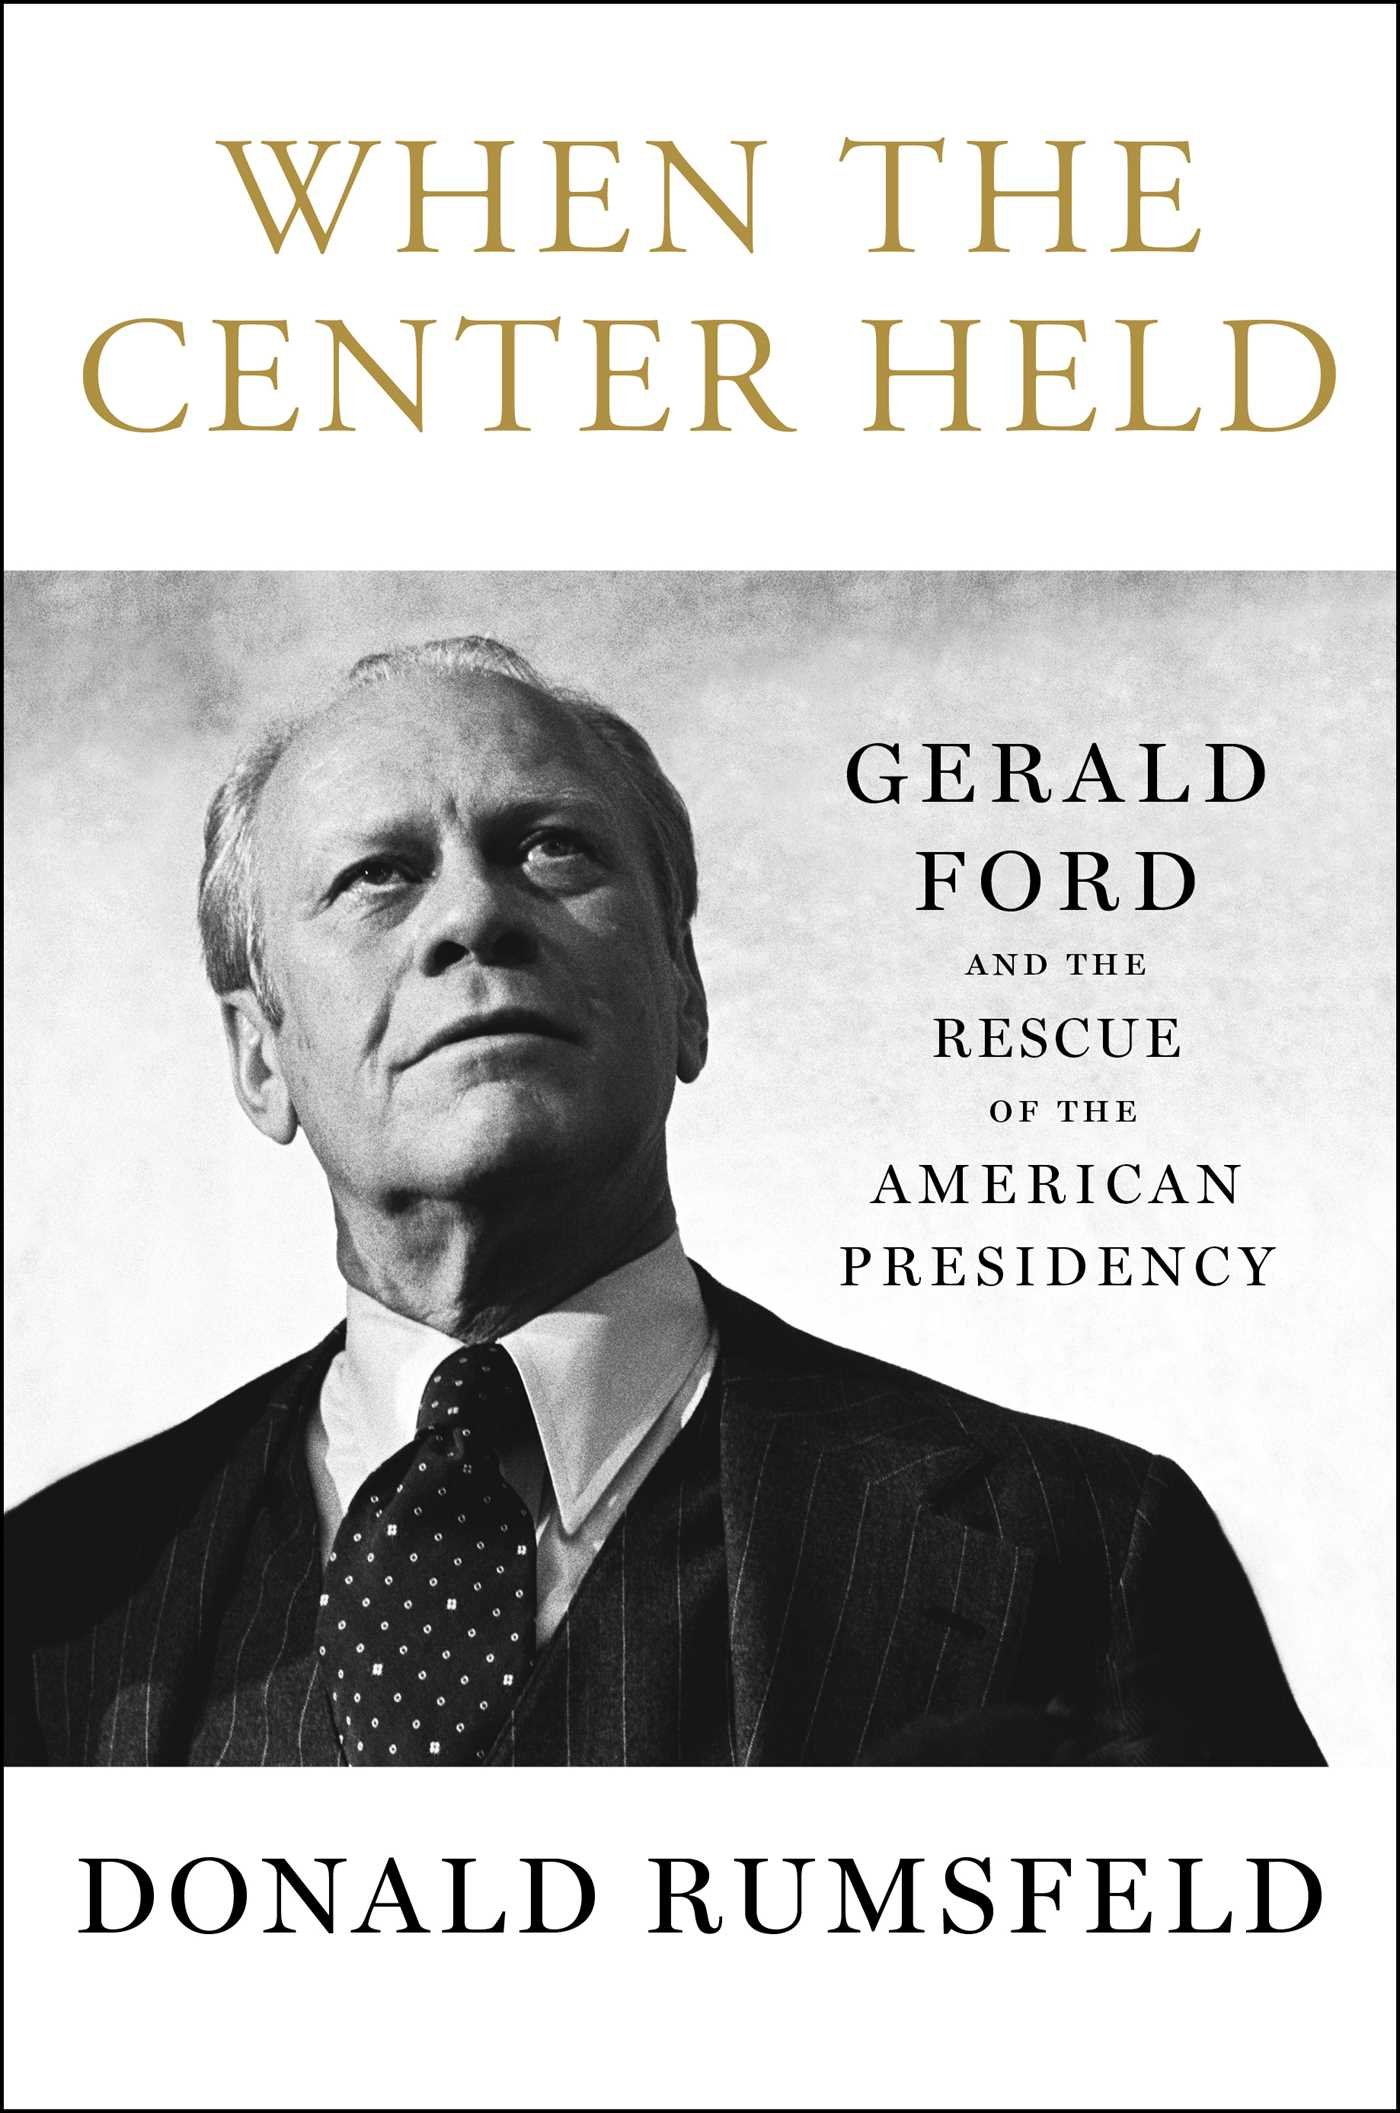 When the Center Held...by Donald Rumsfeld